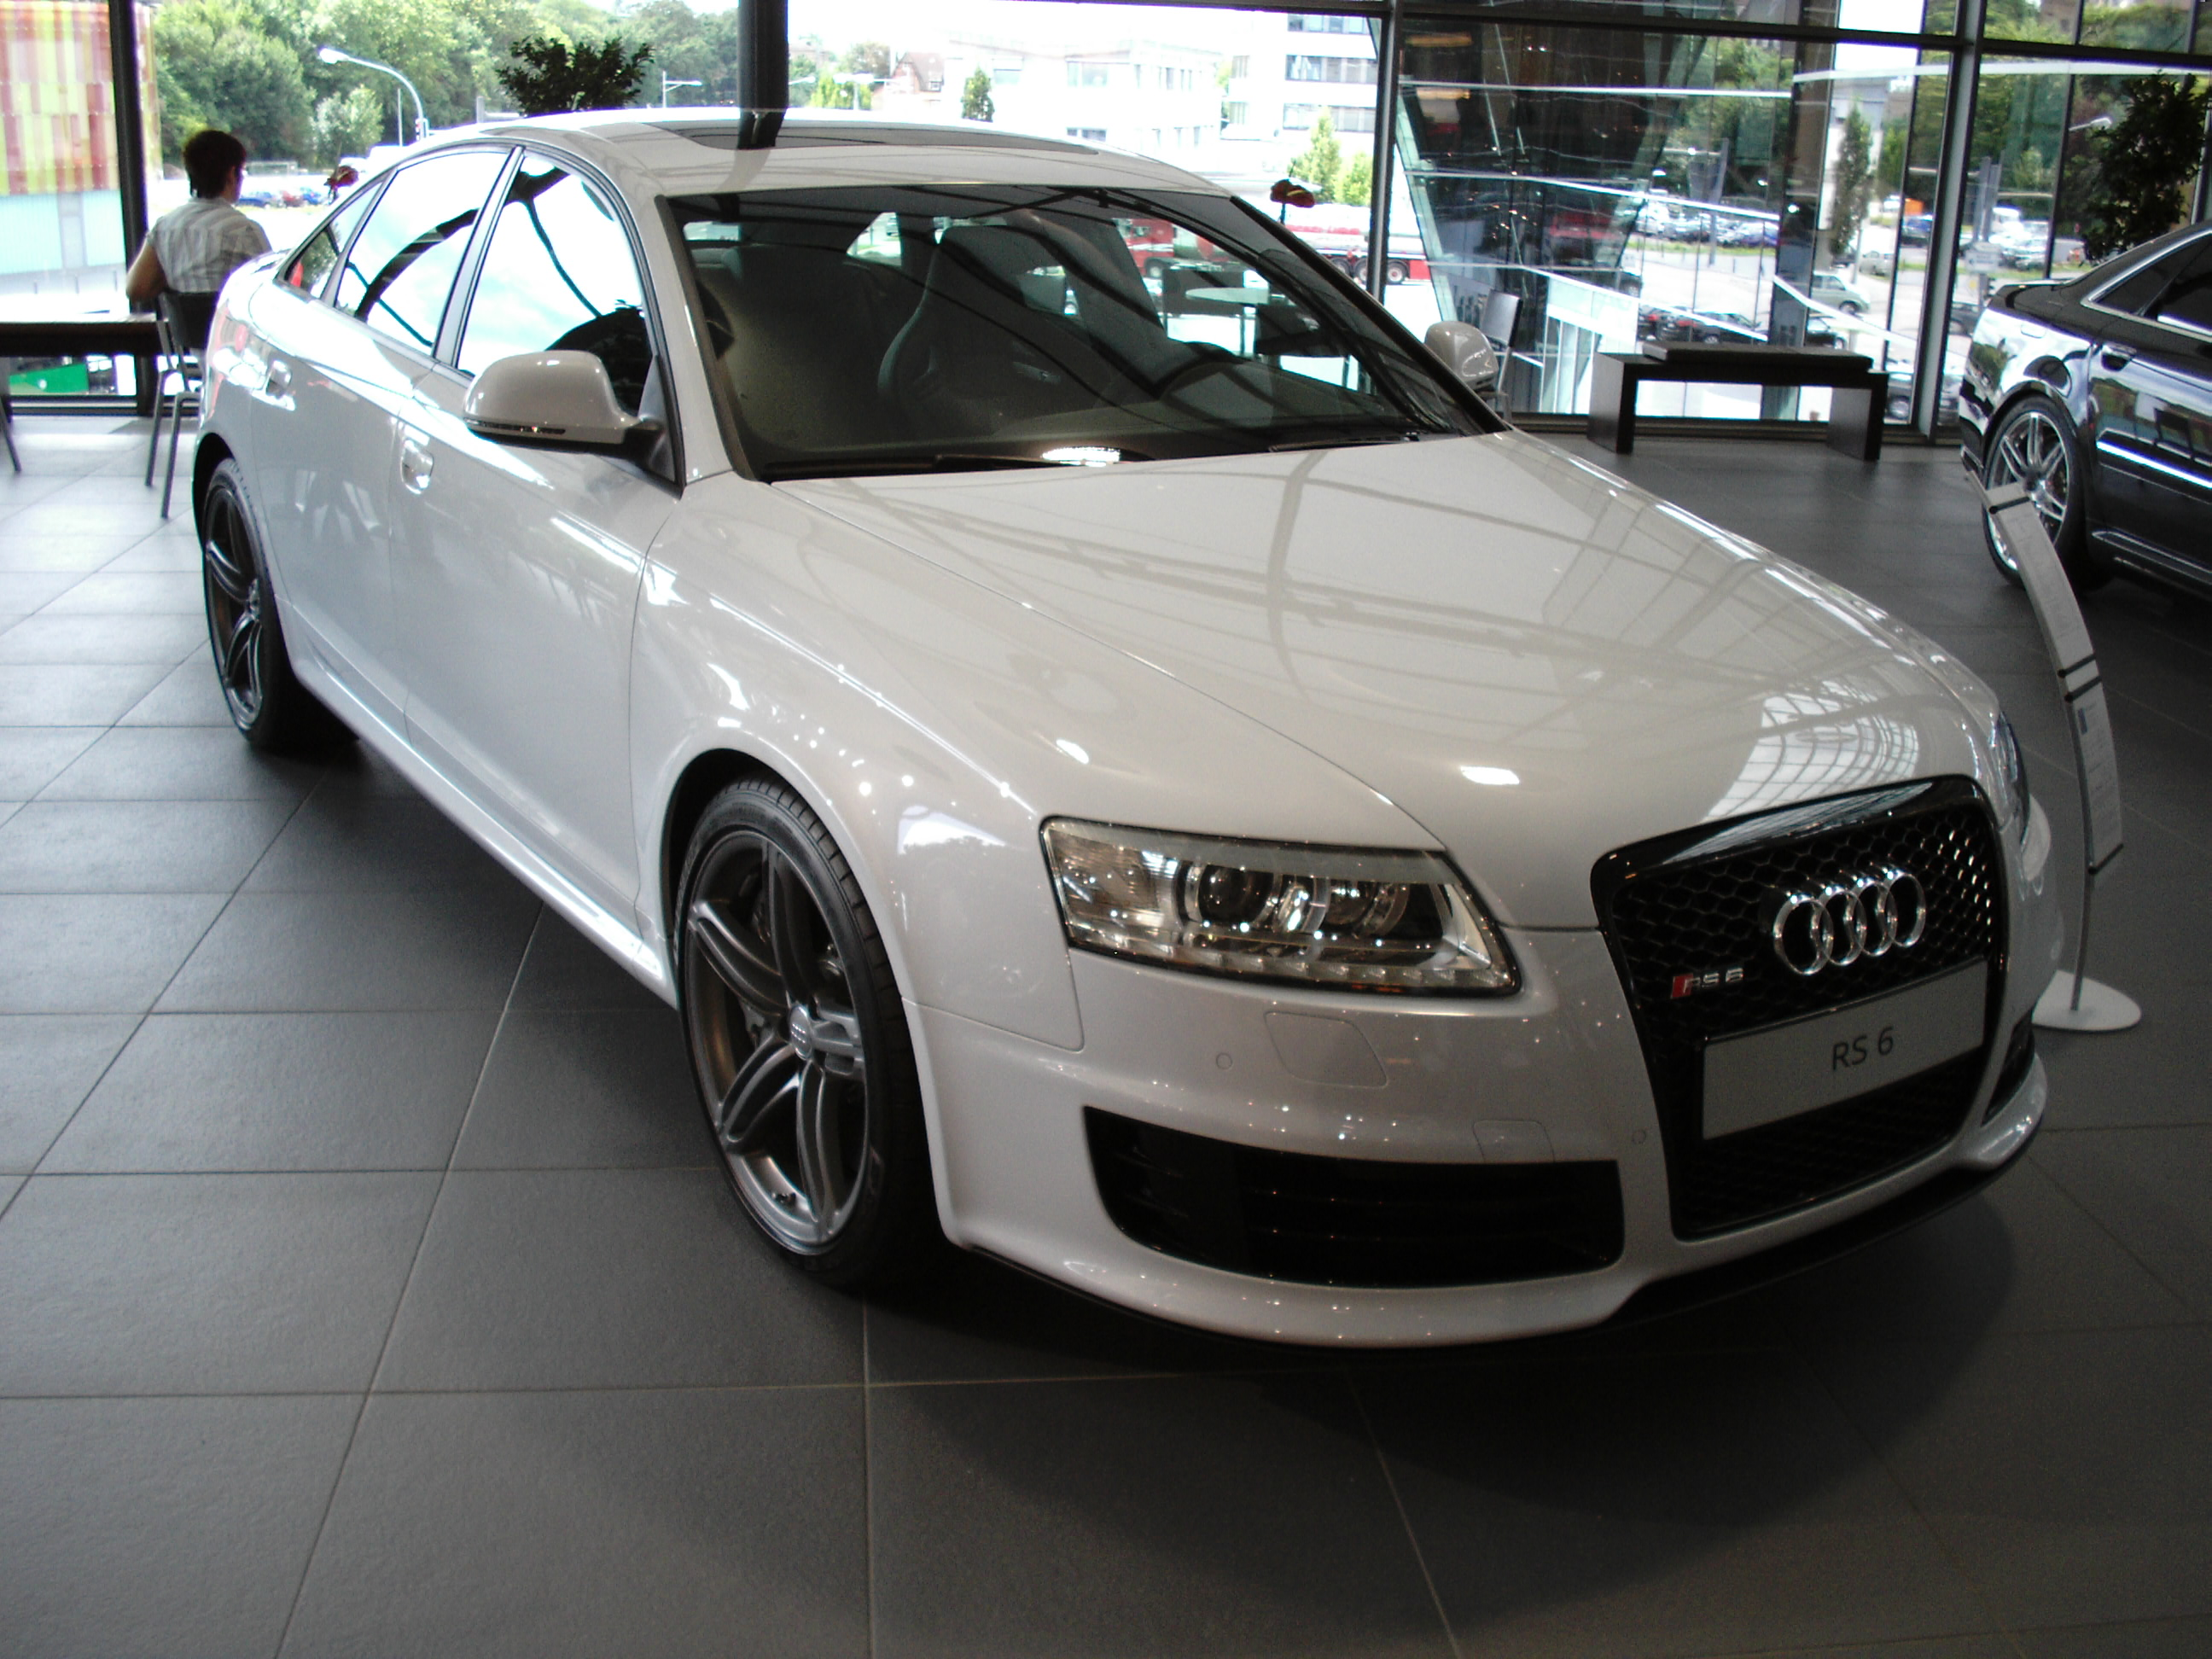 Pictures of audi a6 avant (4f,c6) 2005 #4